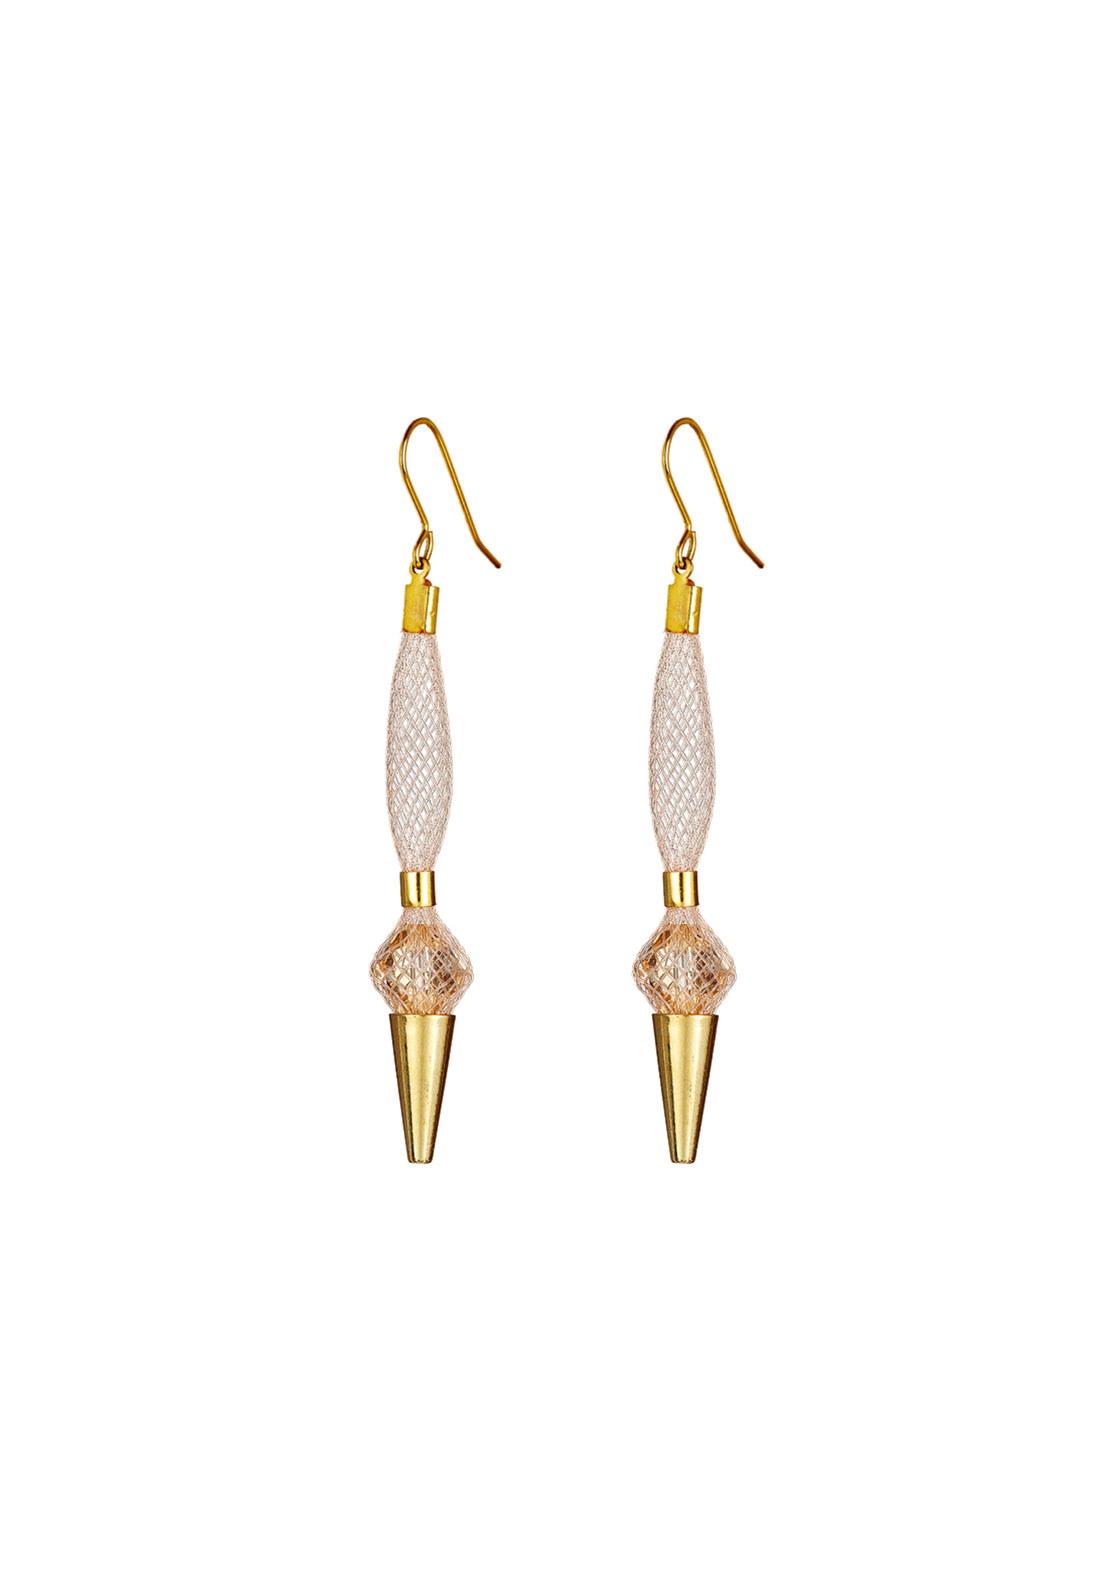 Blaithin Ennis Topaz Small Droplet Earrings, Blush Gold